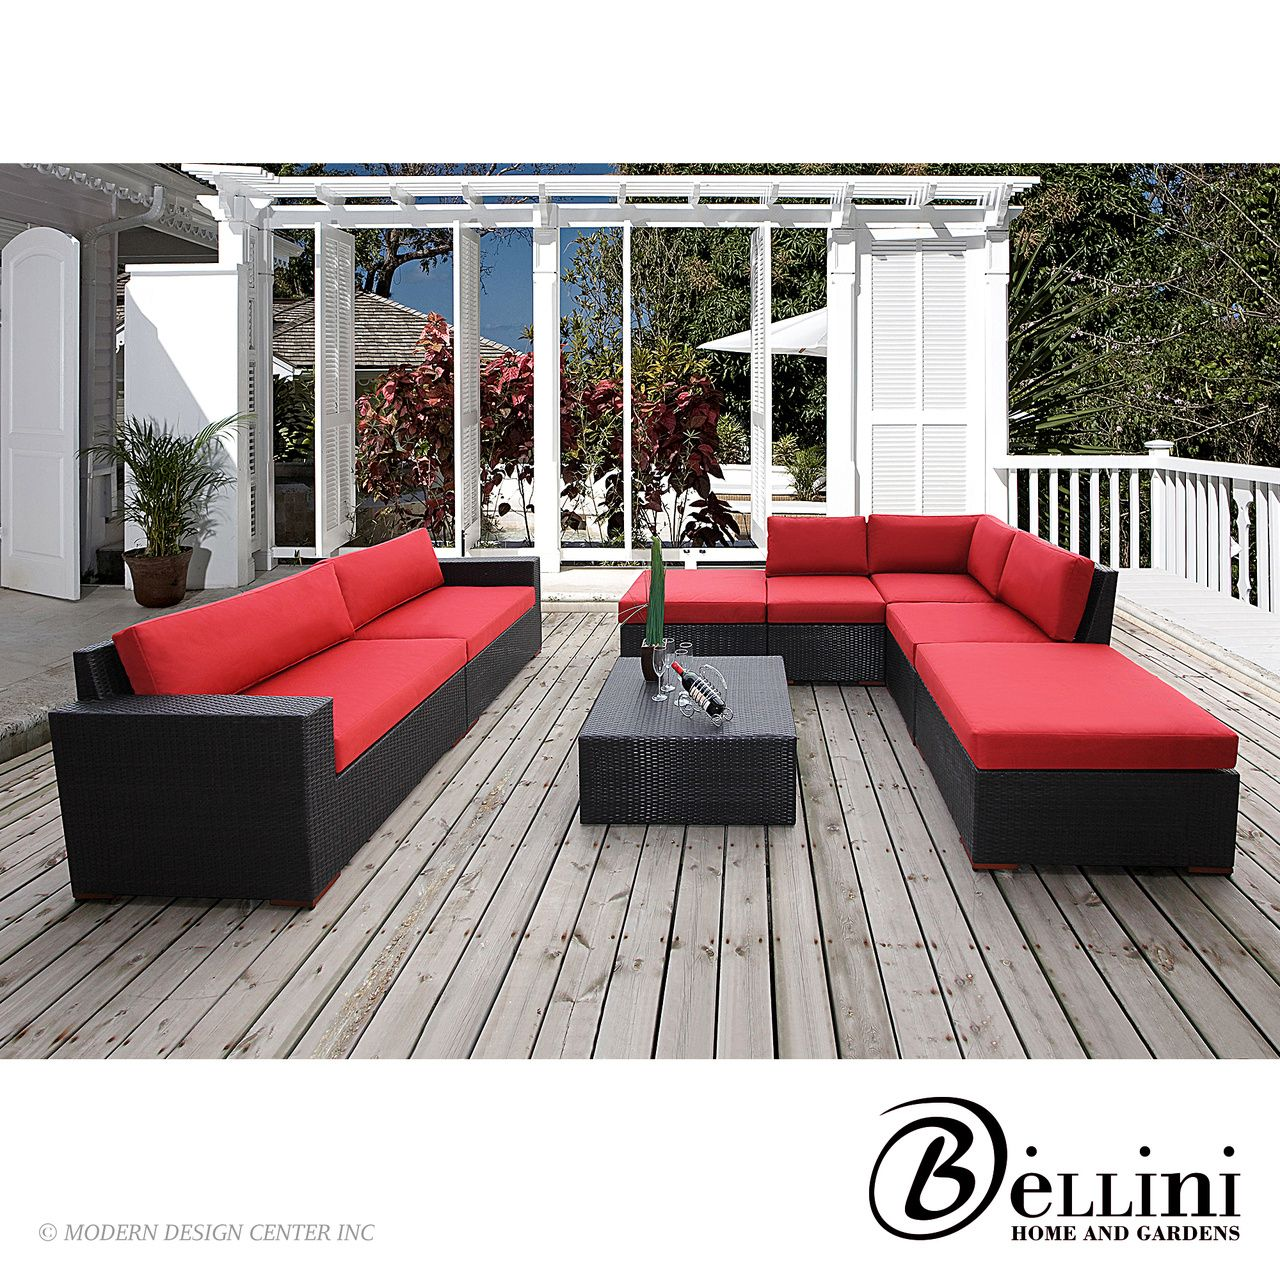 bellini outdoor furniture best bedroom furniture check more at